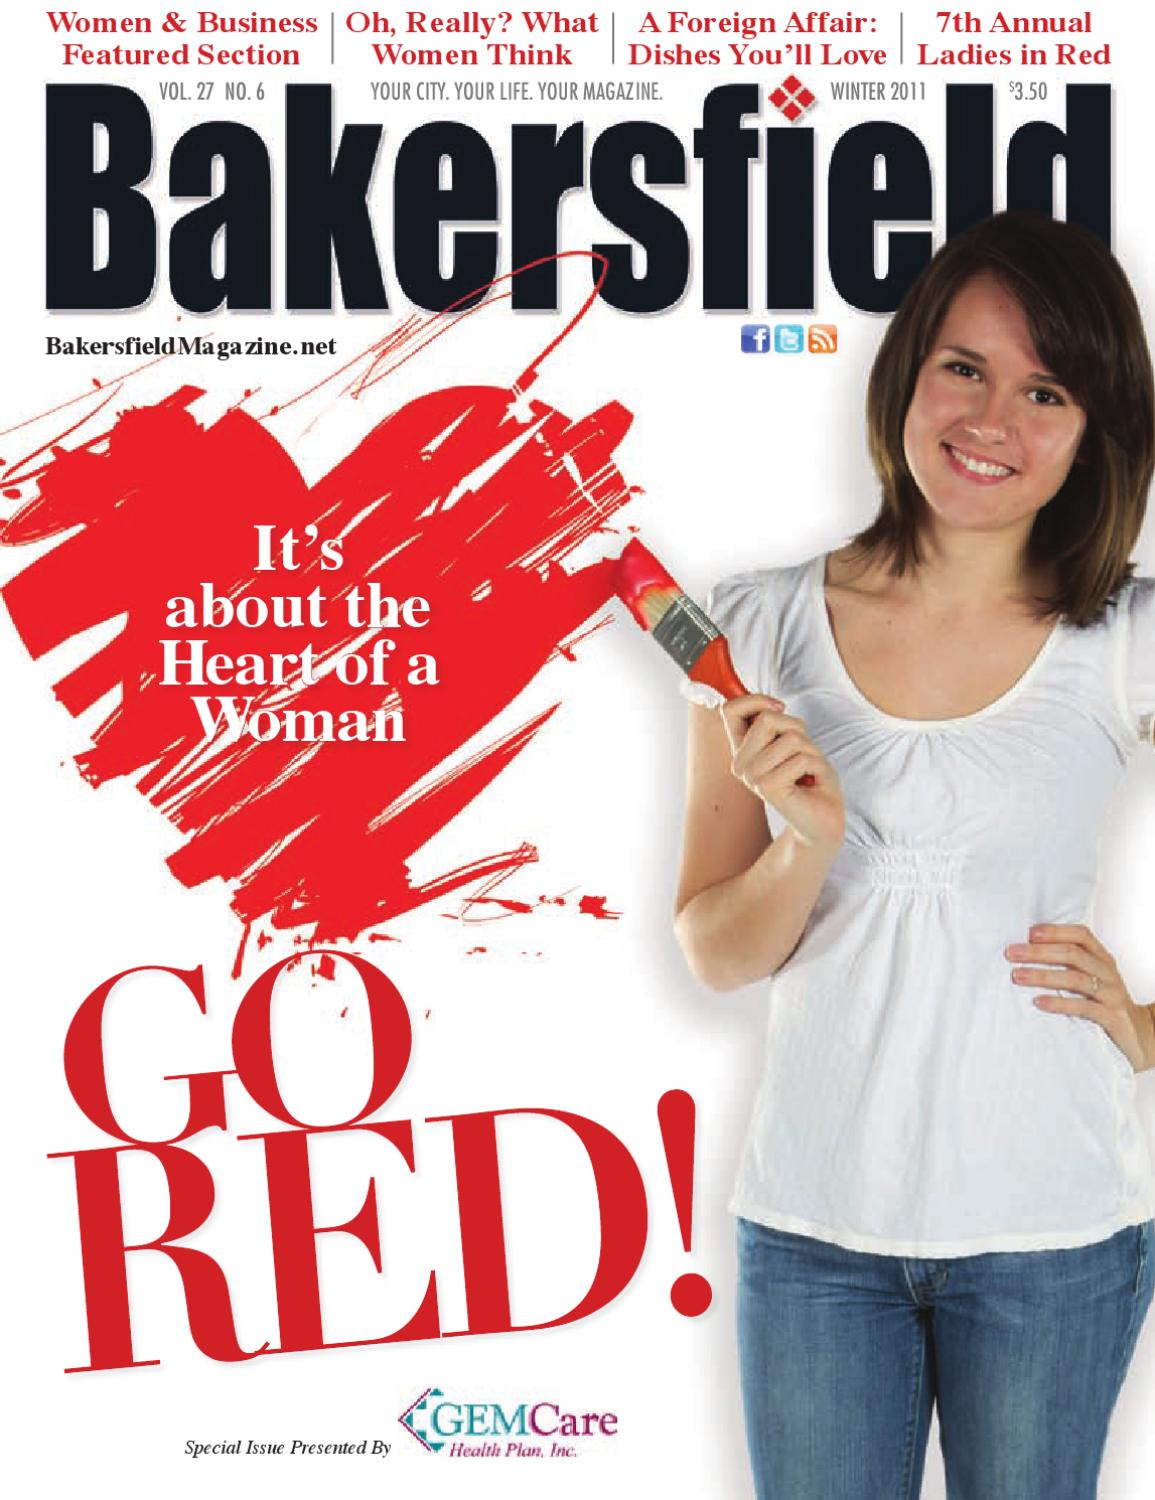 Bakersfield magazine 27 6 go red women business by for Bakersfield home magazine